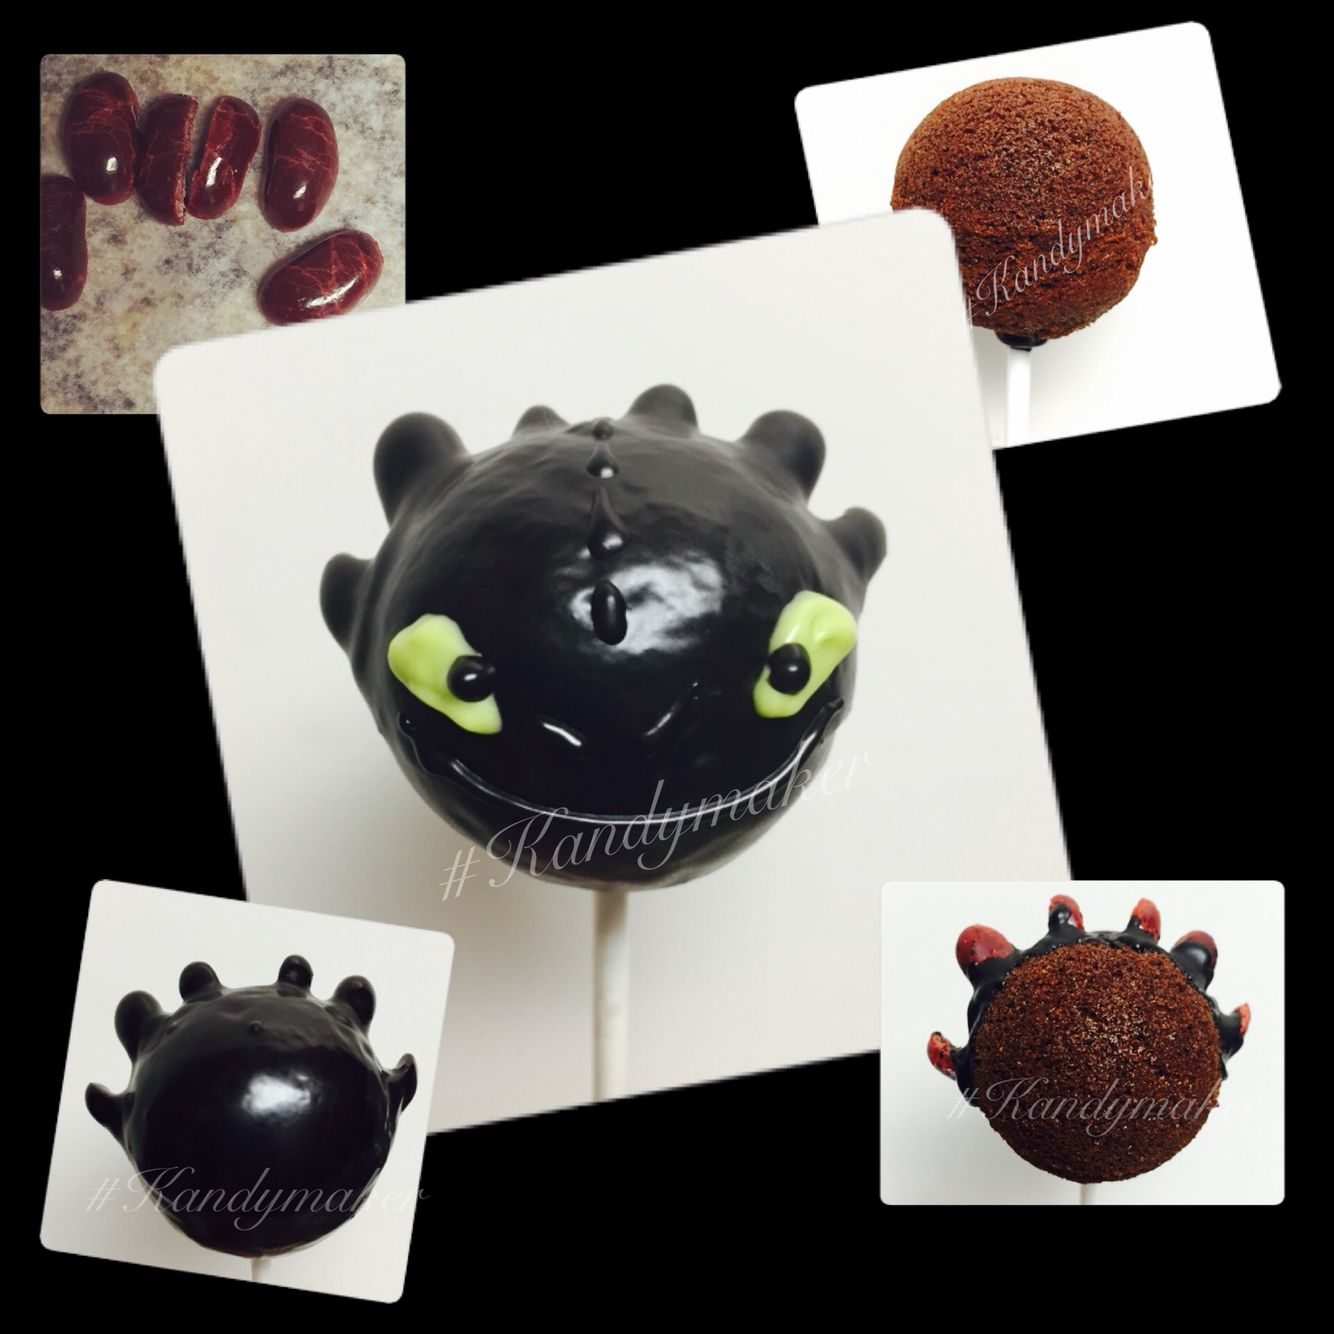 Toothless How To Train Your Dragon Cake Pops Slice One